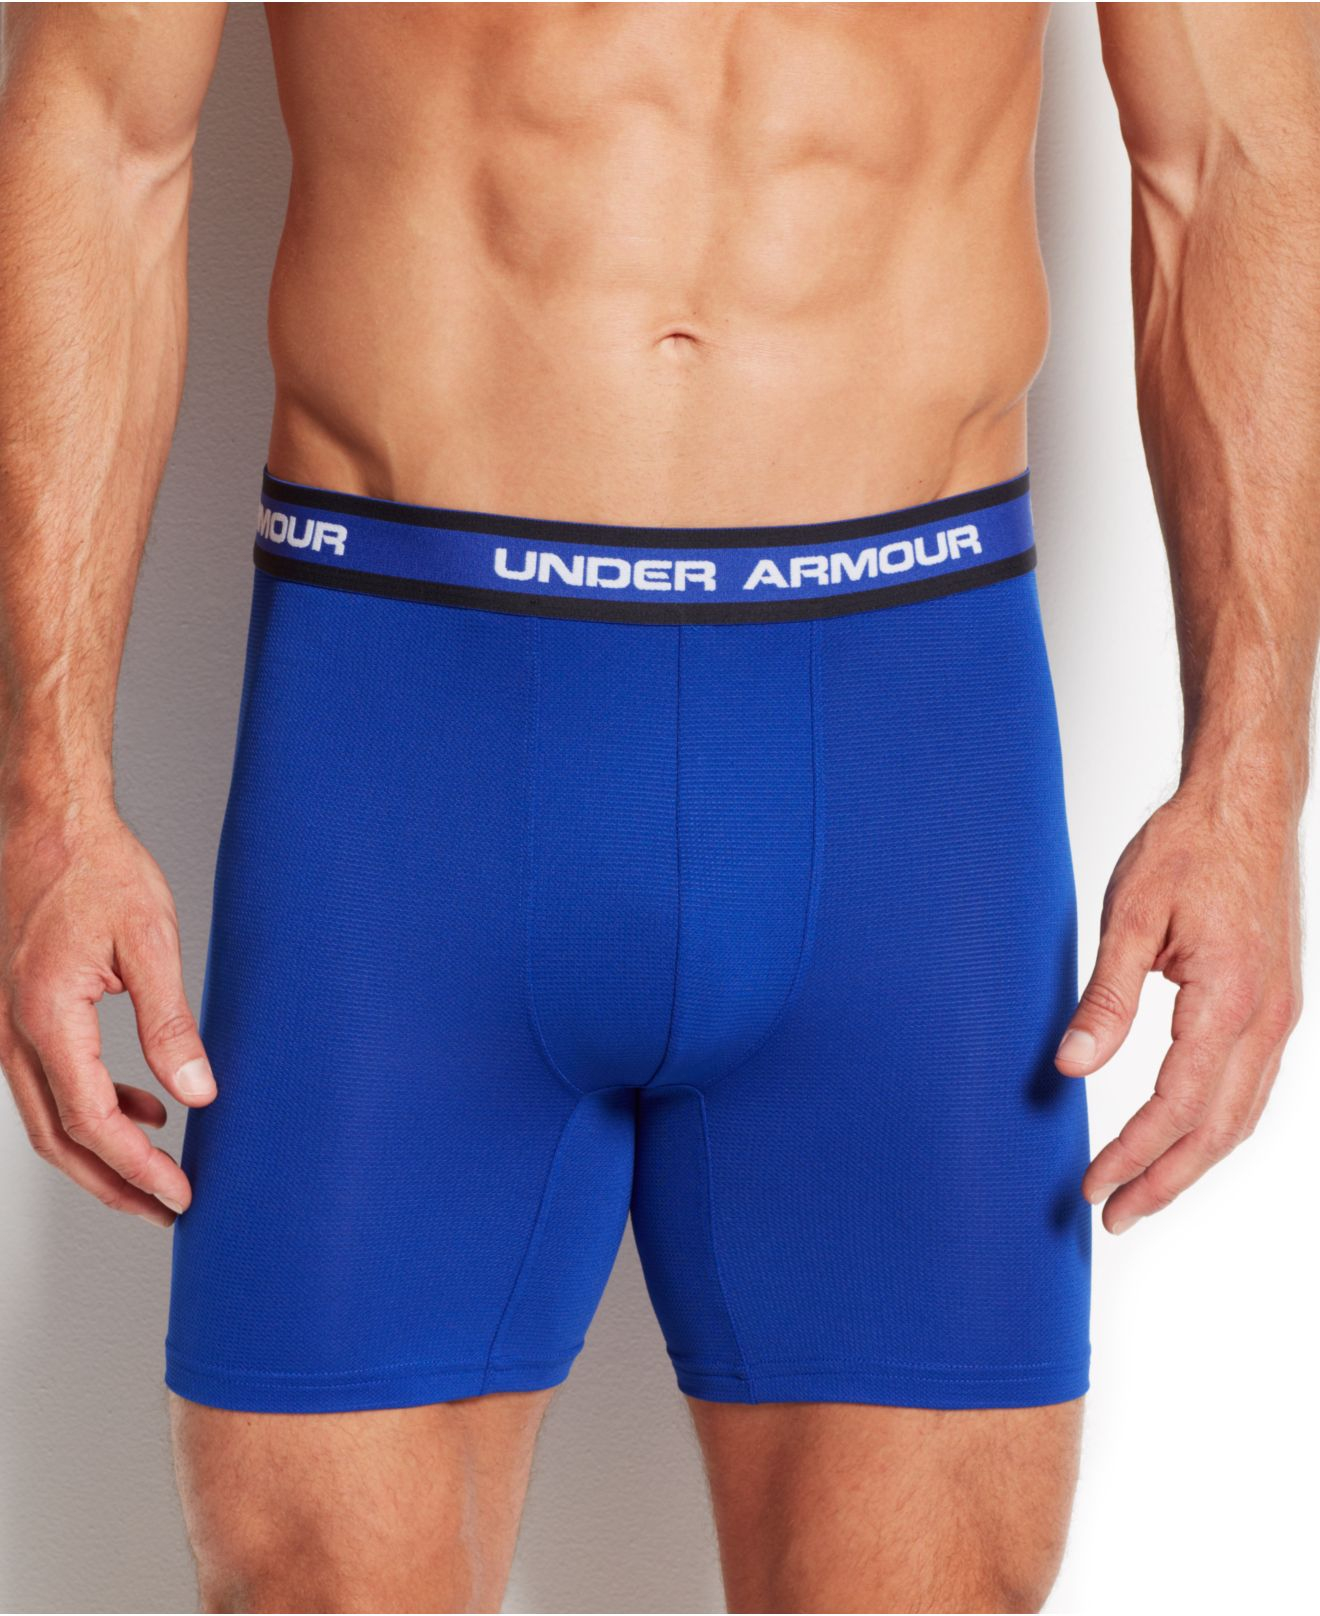 Under armour performance mesh boxer briefs 2 pack in blue for Mens under armour under shirt